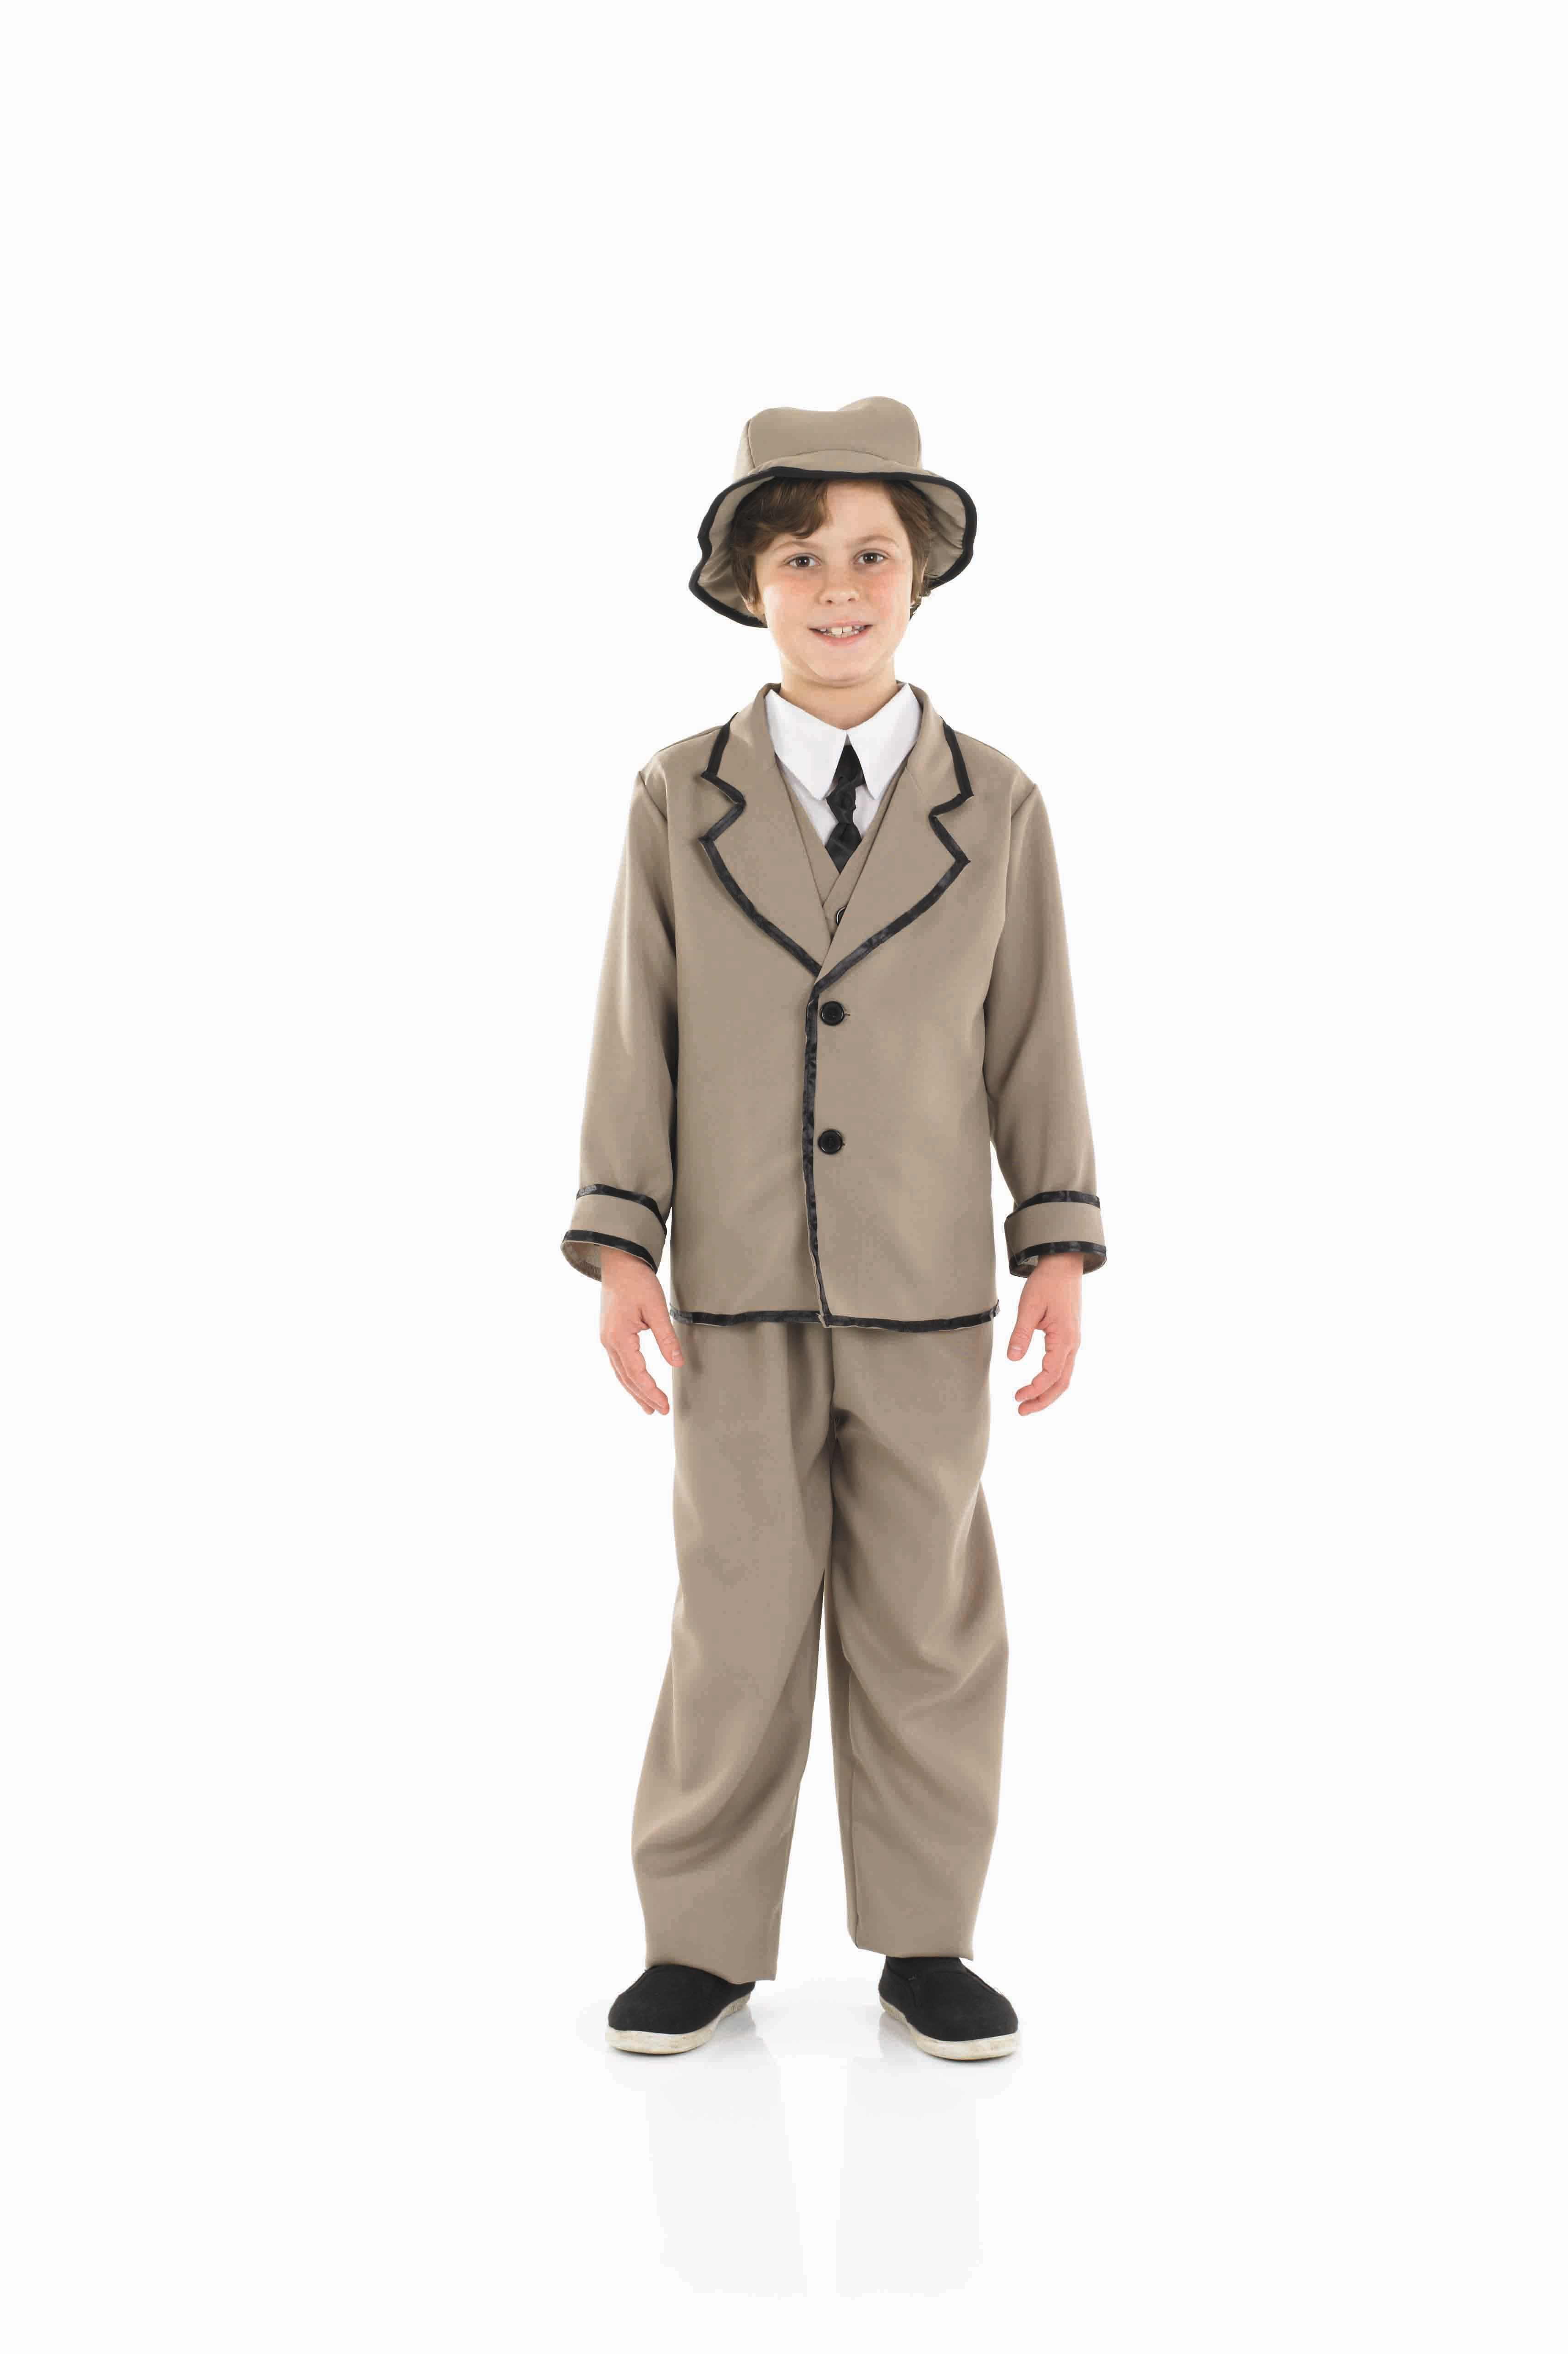 Boys-Edwardian-Boy-Costume-for-Historic-Book-Day-Fancy-Dress-Up-Outfits